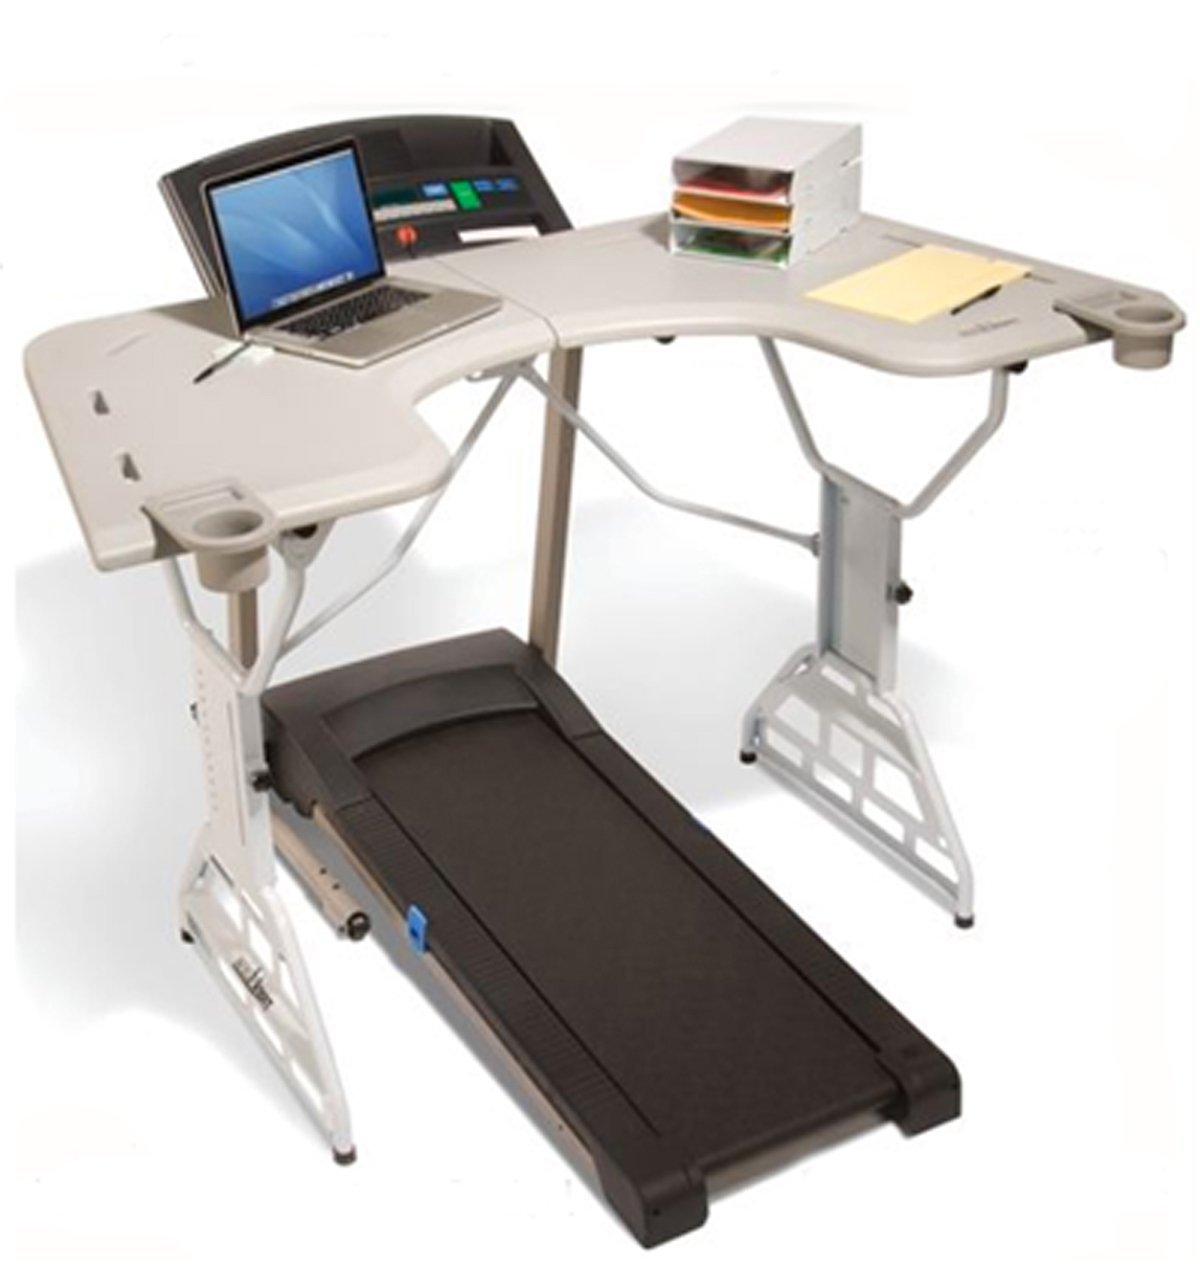 amazon.com : trekdesk treadmill desk : exercise treadmills : sports u0026  outdoors QRMOUCK